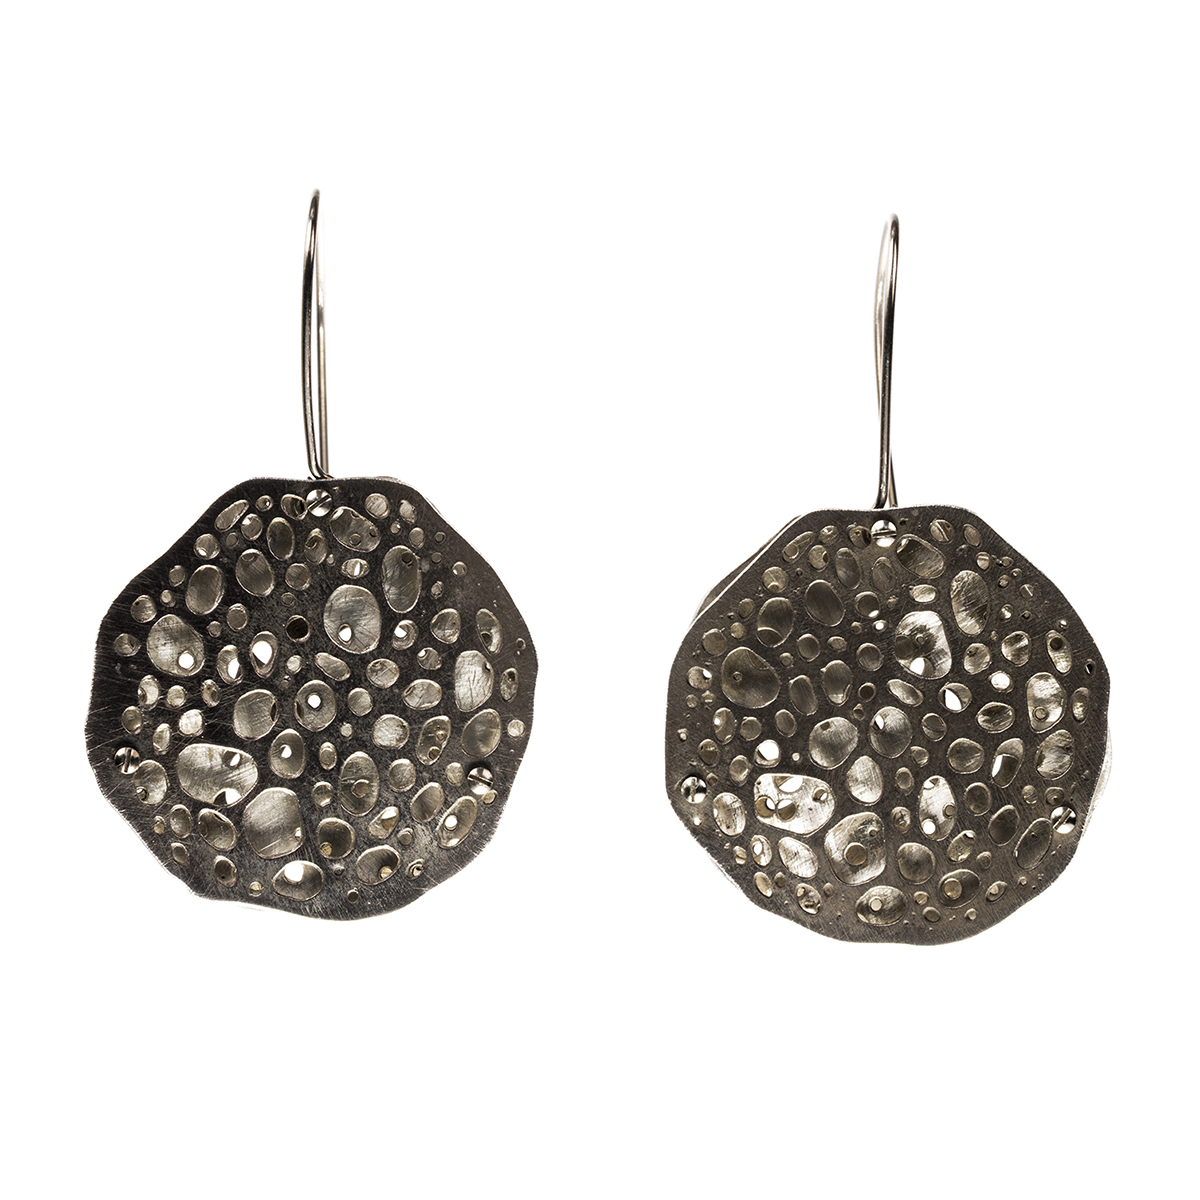 Collosphaera Huxleyi, Müller DMO Octo: Microscopic radiolarian sized up, design modified, electrolytically etched in sterling silver and hand fabricated into earrings